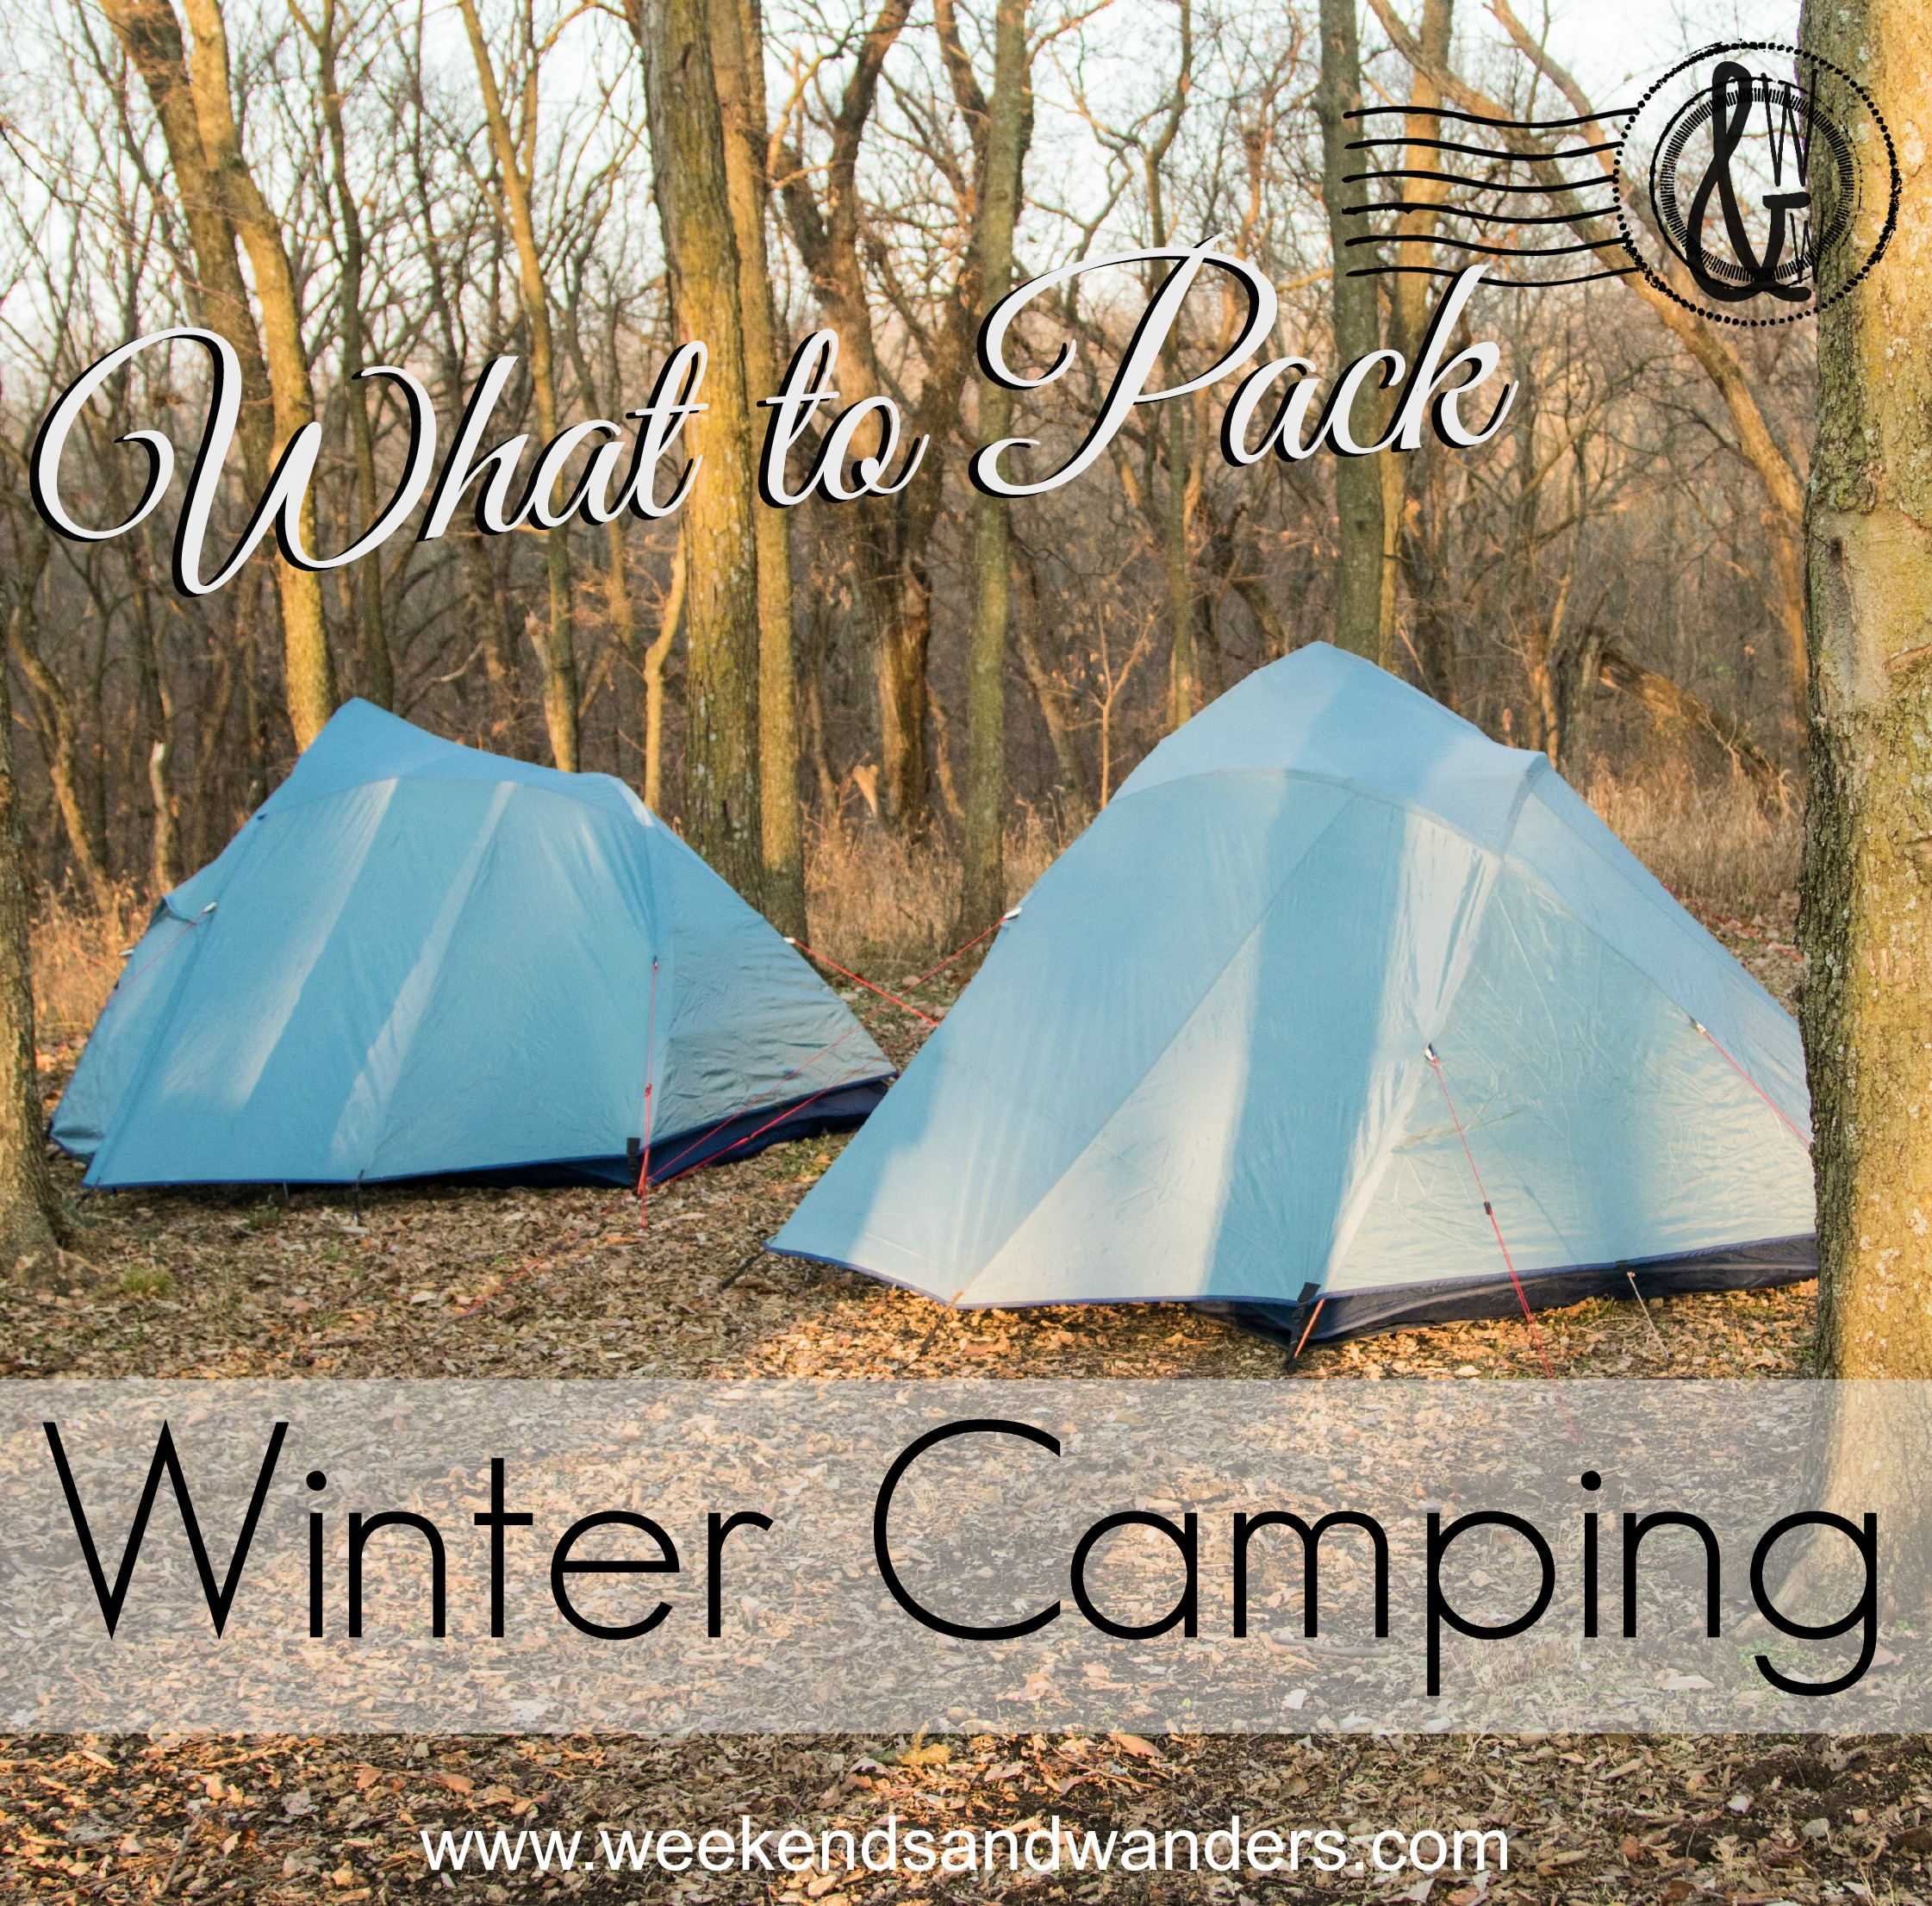 Winter camping is fun AND possible! You just have to have the right gear. Find out what to pack at Weekends & Wanders